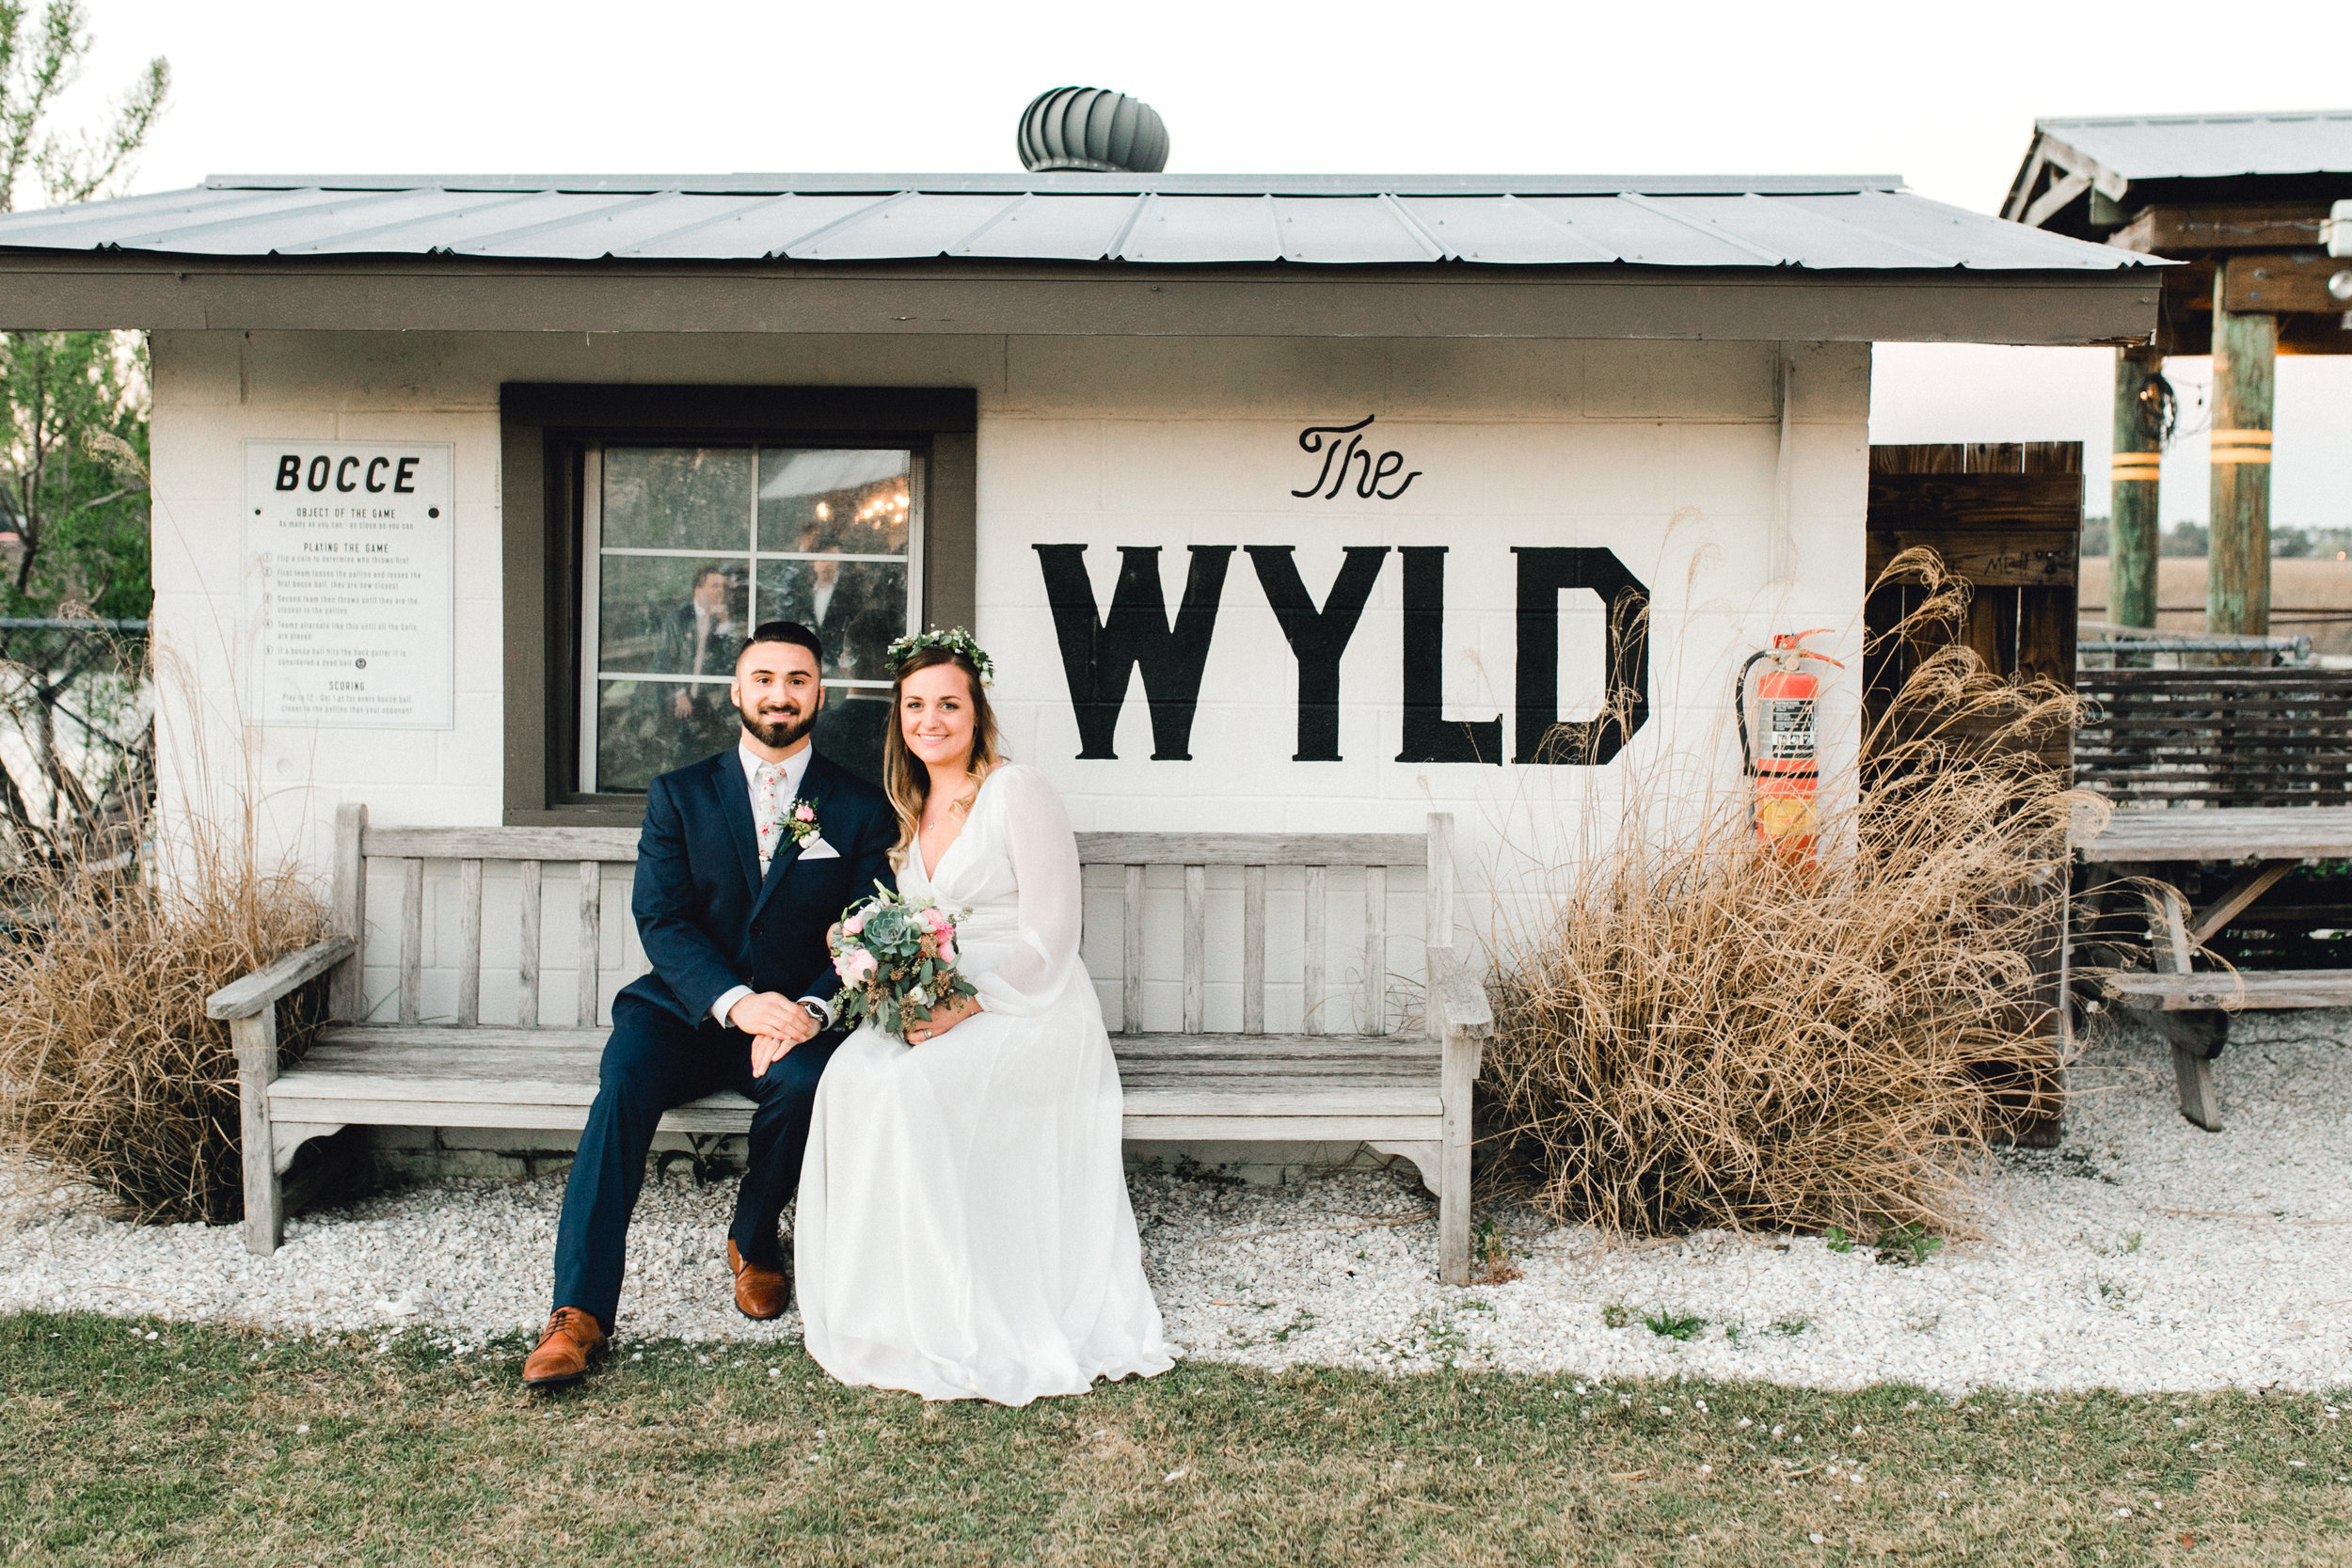 Wyld Dock Bark Wedding SAvannah, ga Katherine ives photography